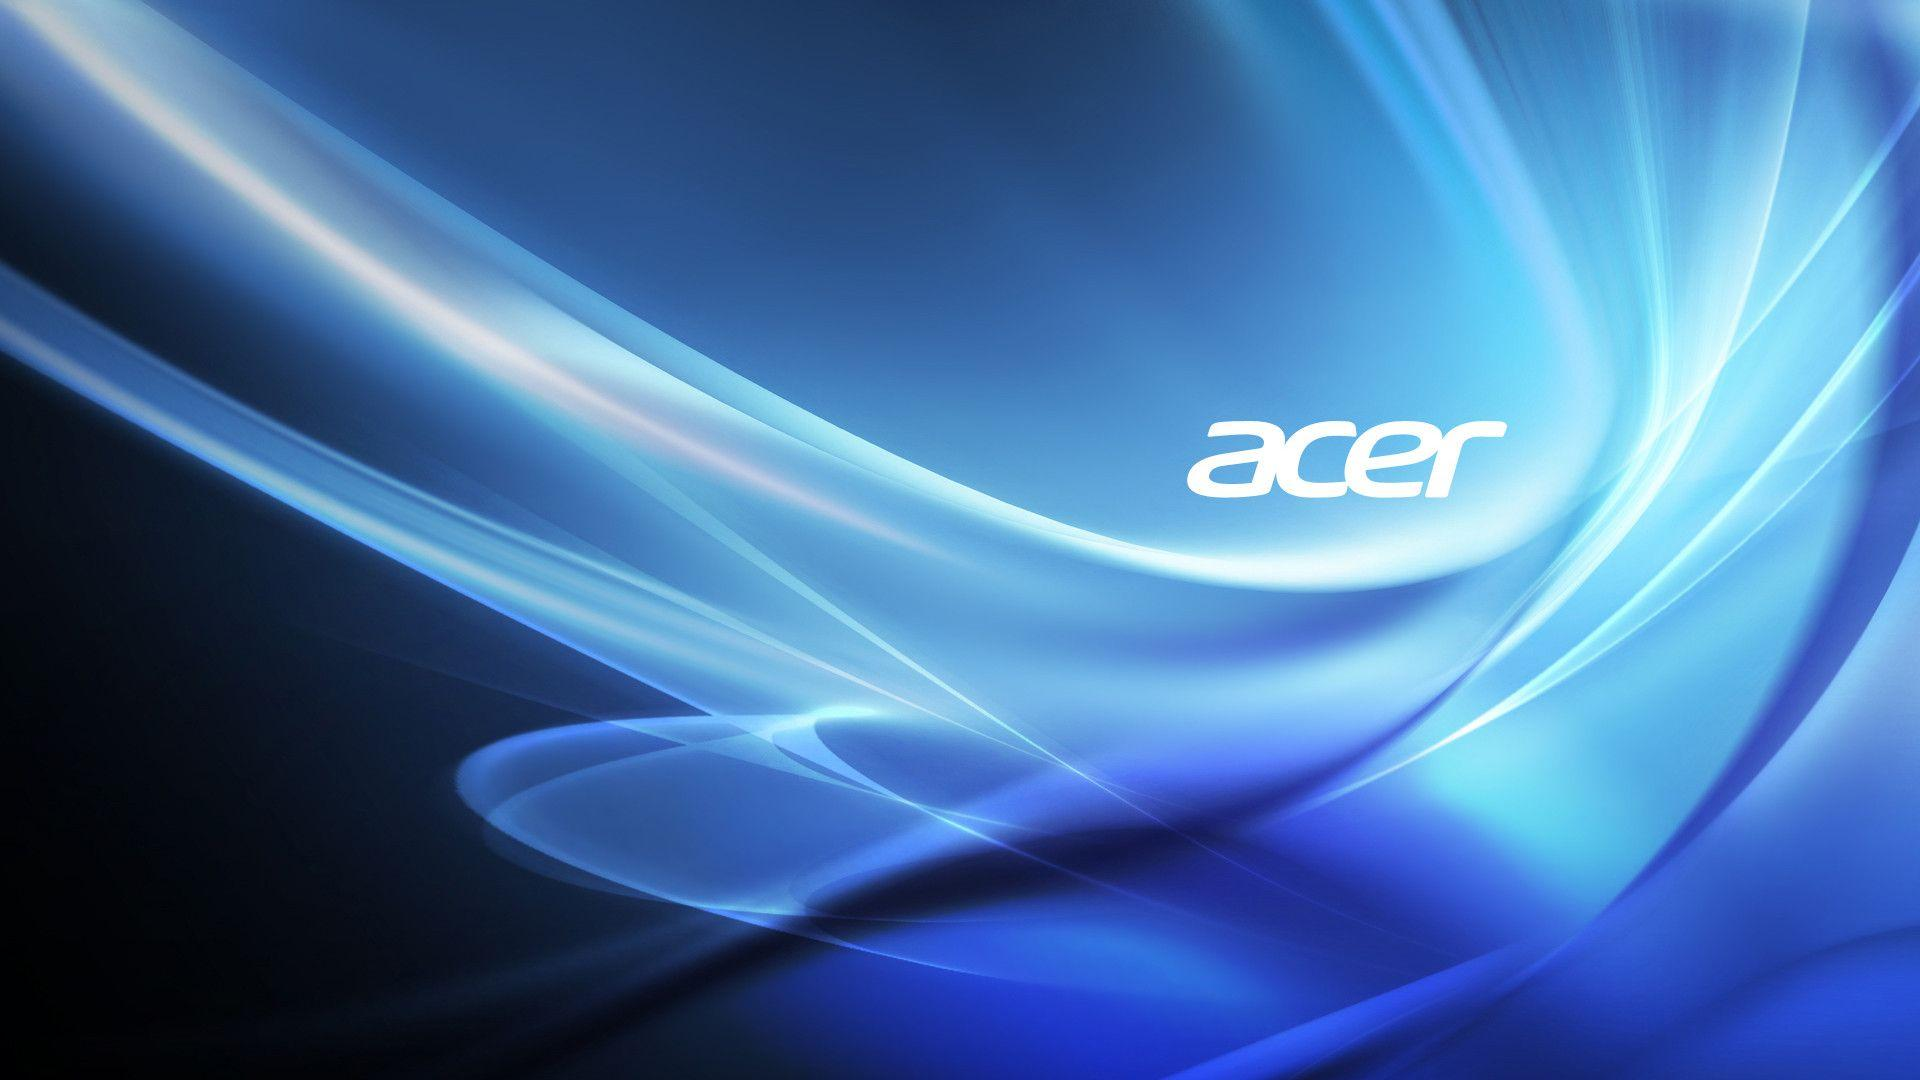 Acer Wallpapers Top Free Acer Backgrounds Wallpaperaccess